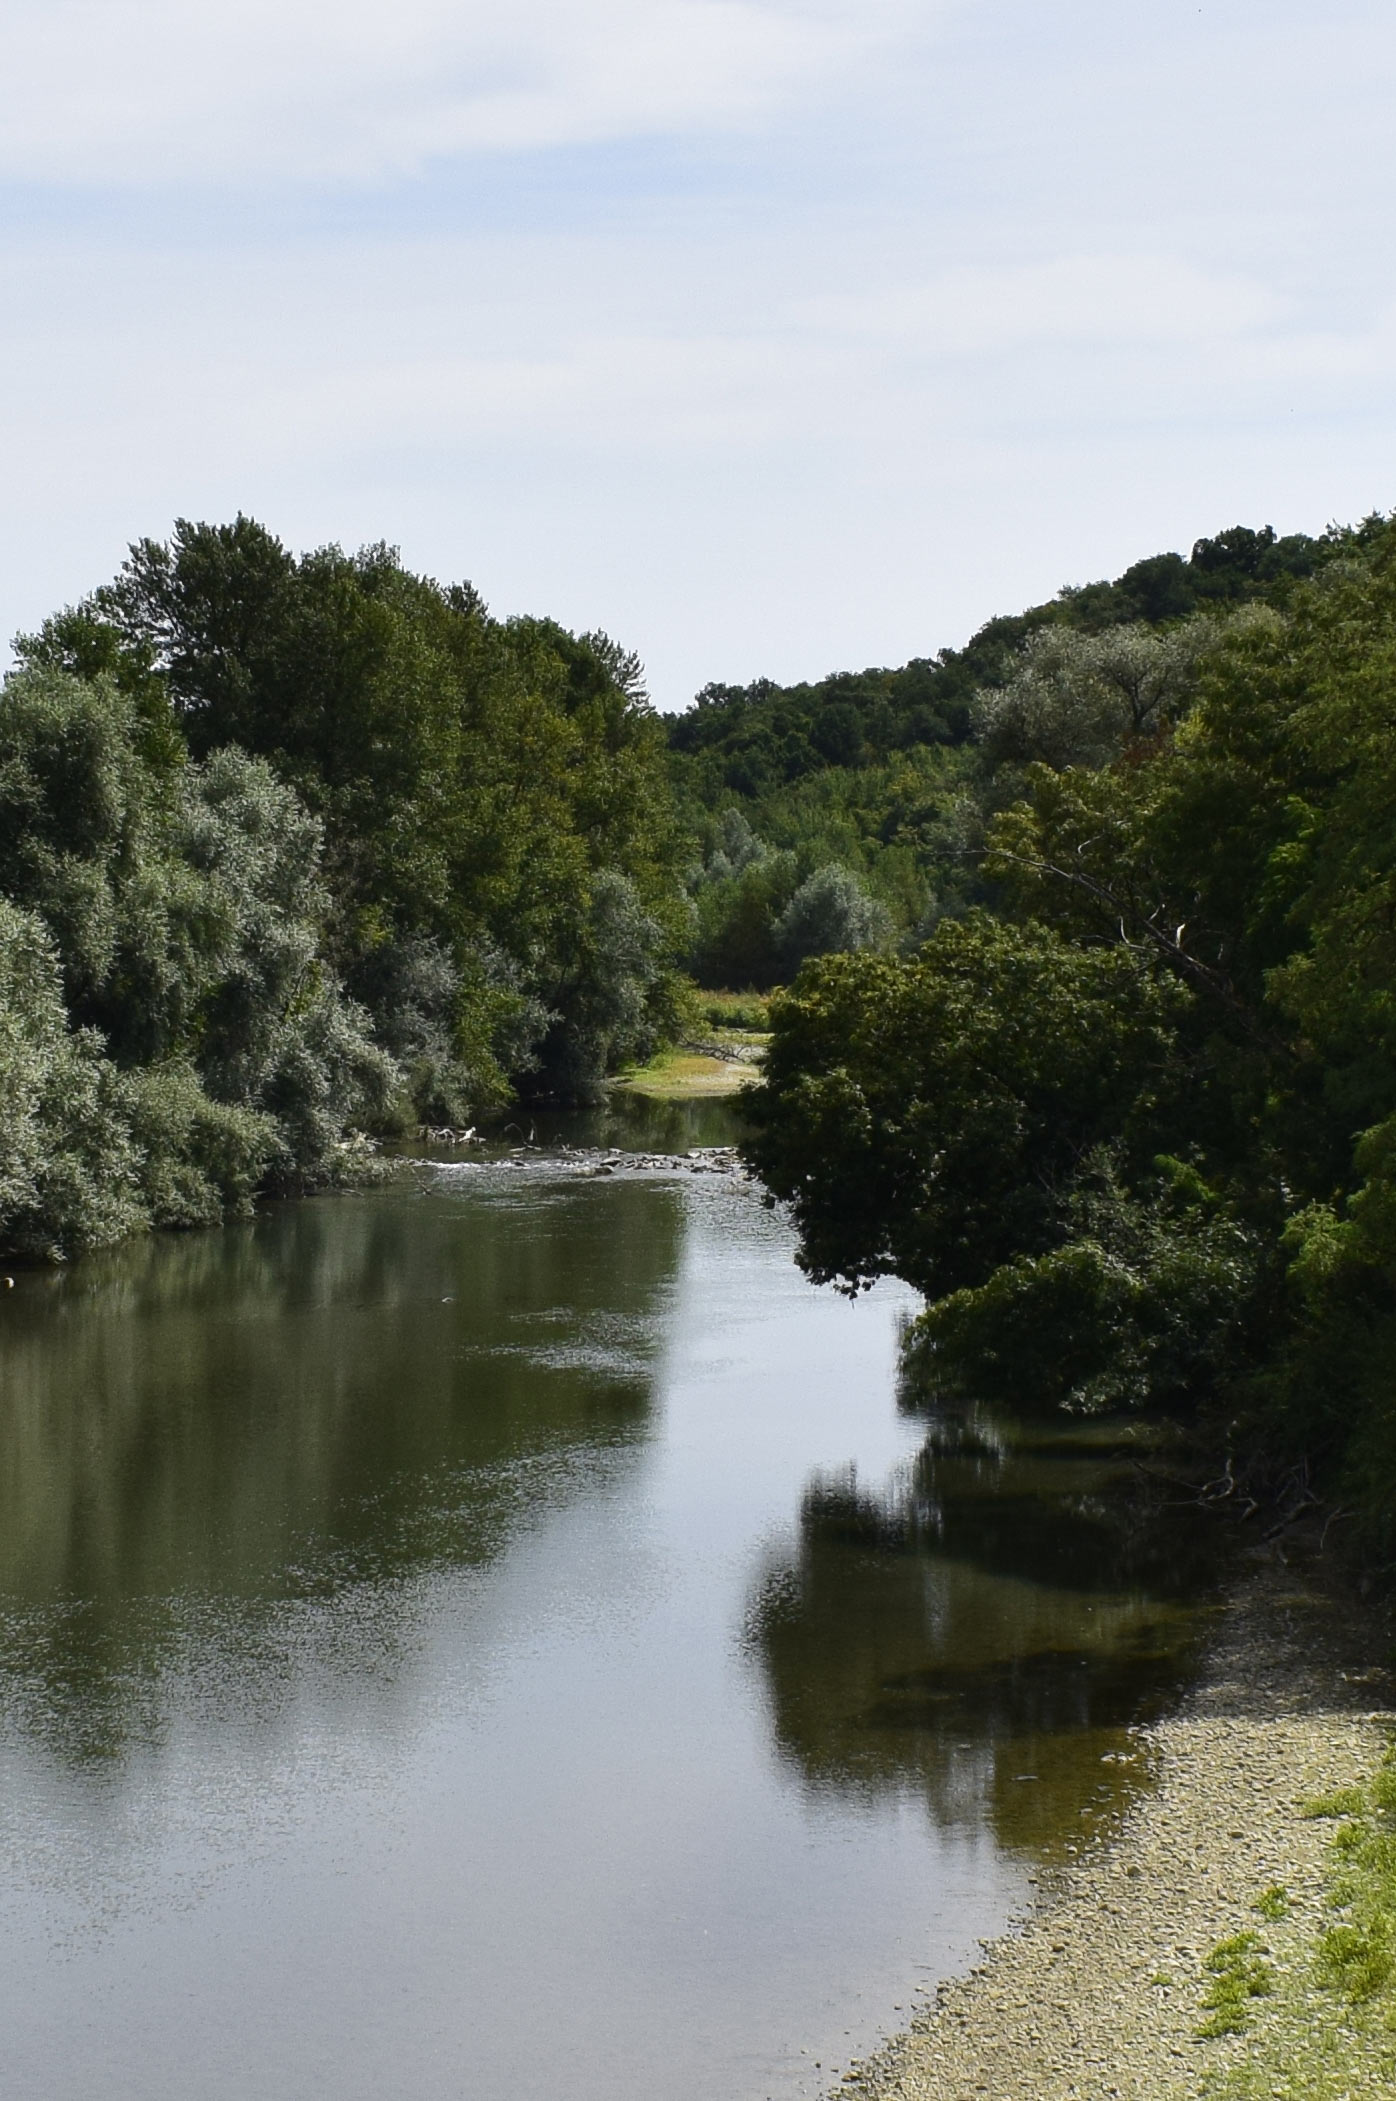 River Adour from bridge at Saint Mont, near Riscle